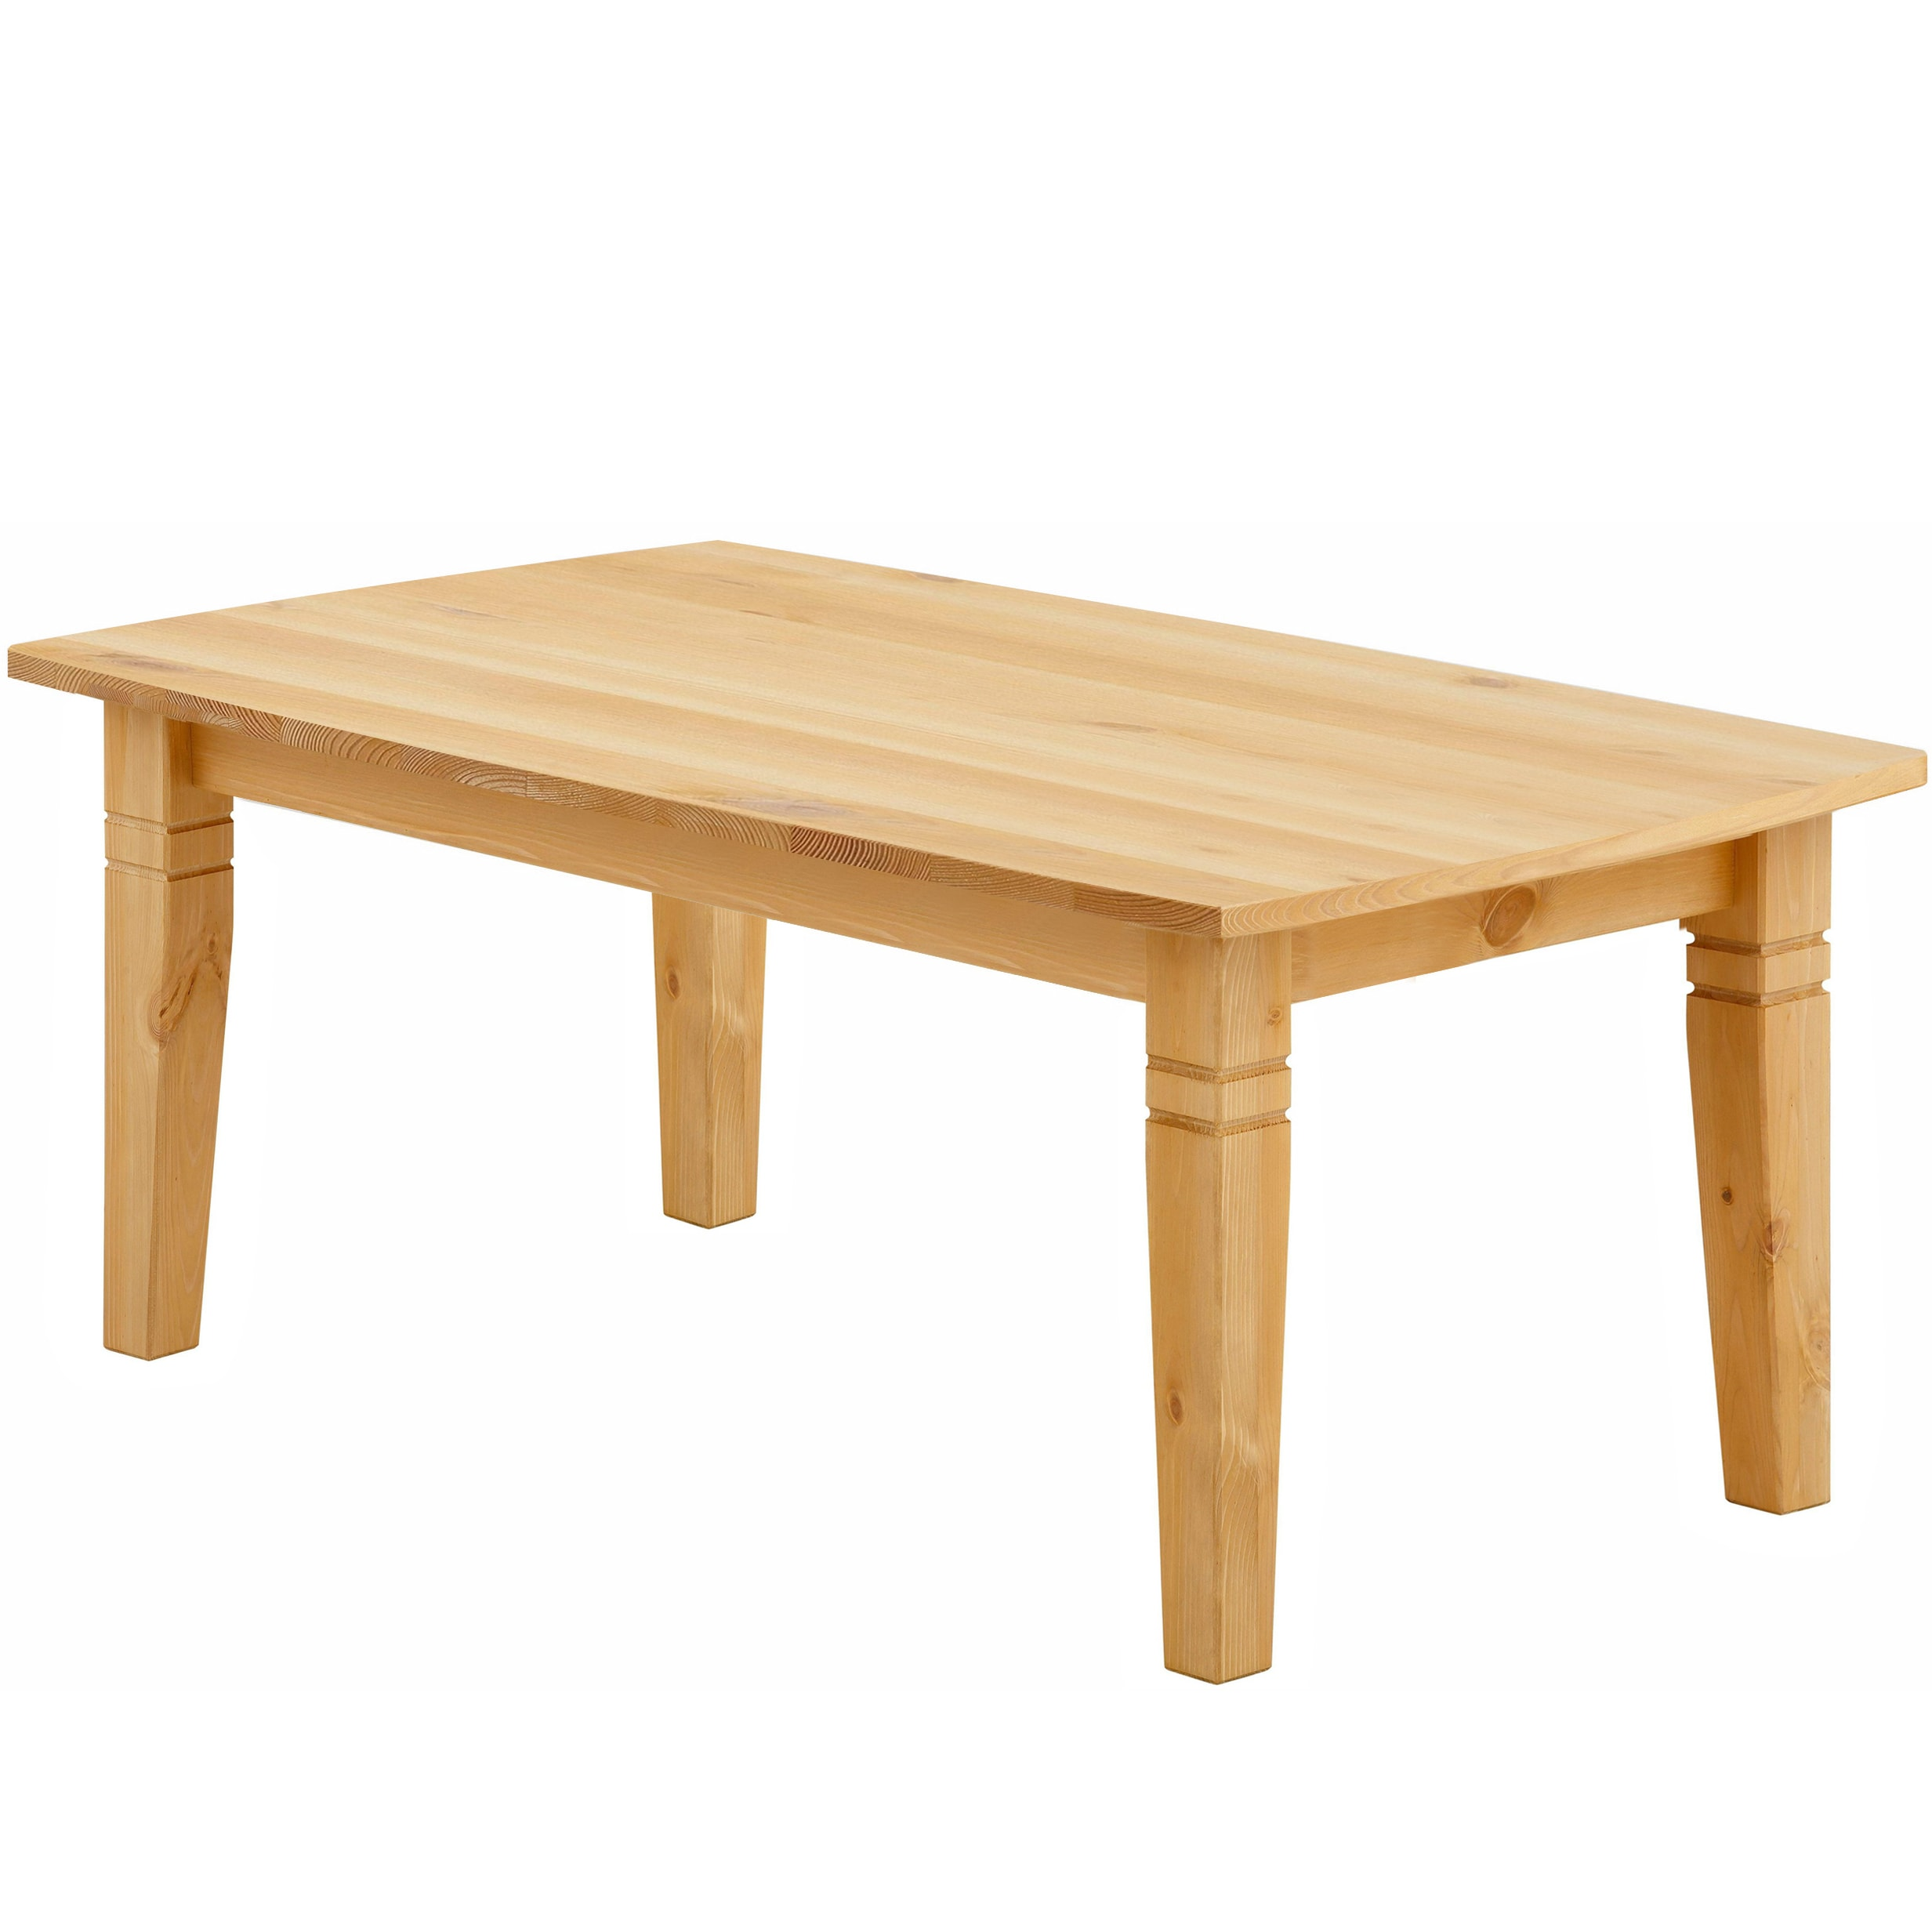 Solid Pine Coffee Table.Tierra Solid Pine Coffee Table Natural